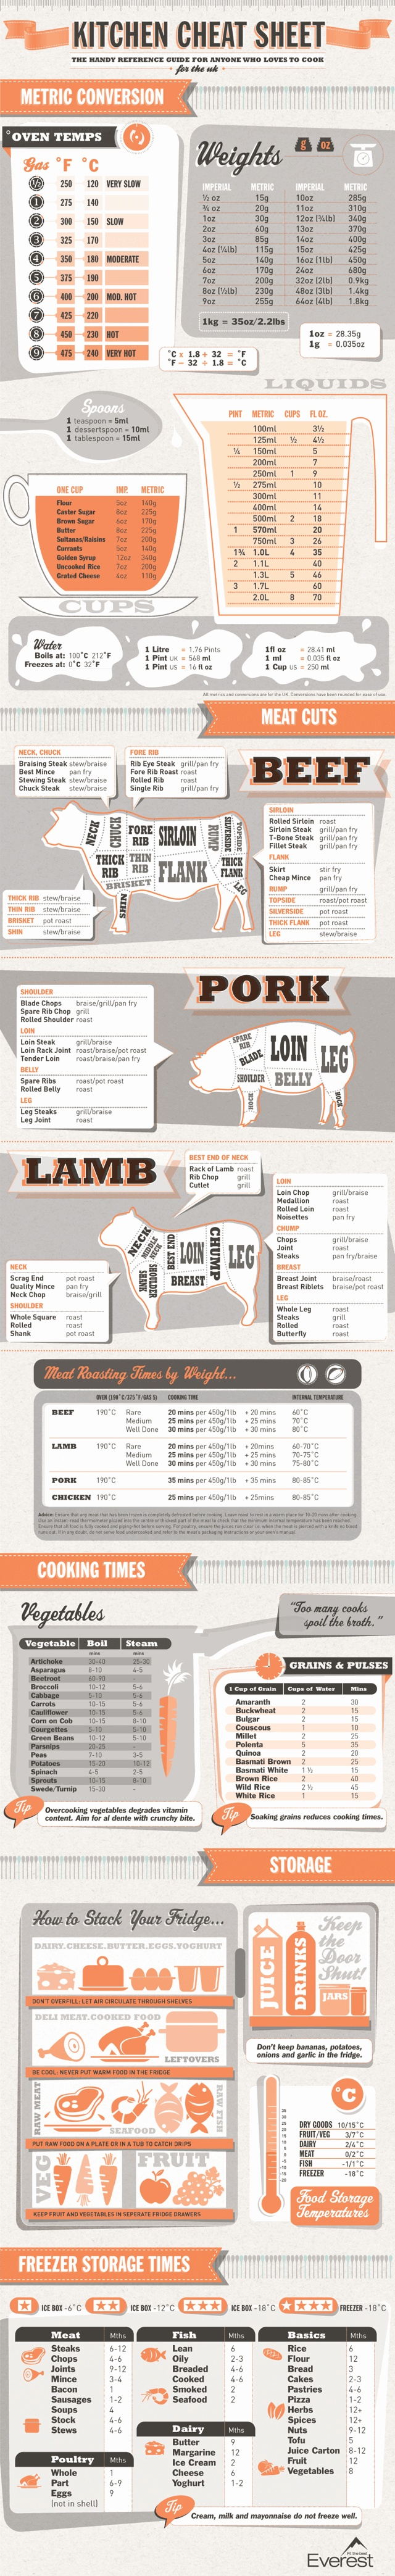 How long is a steak in the freezer good? How many pints in a cup? What is flank steak? How long do I need to cook carrots? What long does it take to cook a steak medium? This handy kitchen cheat sheet can make you look more like Martha Stewart and less like a McDonald's fry cook.